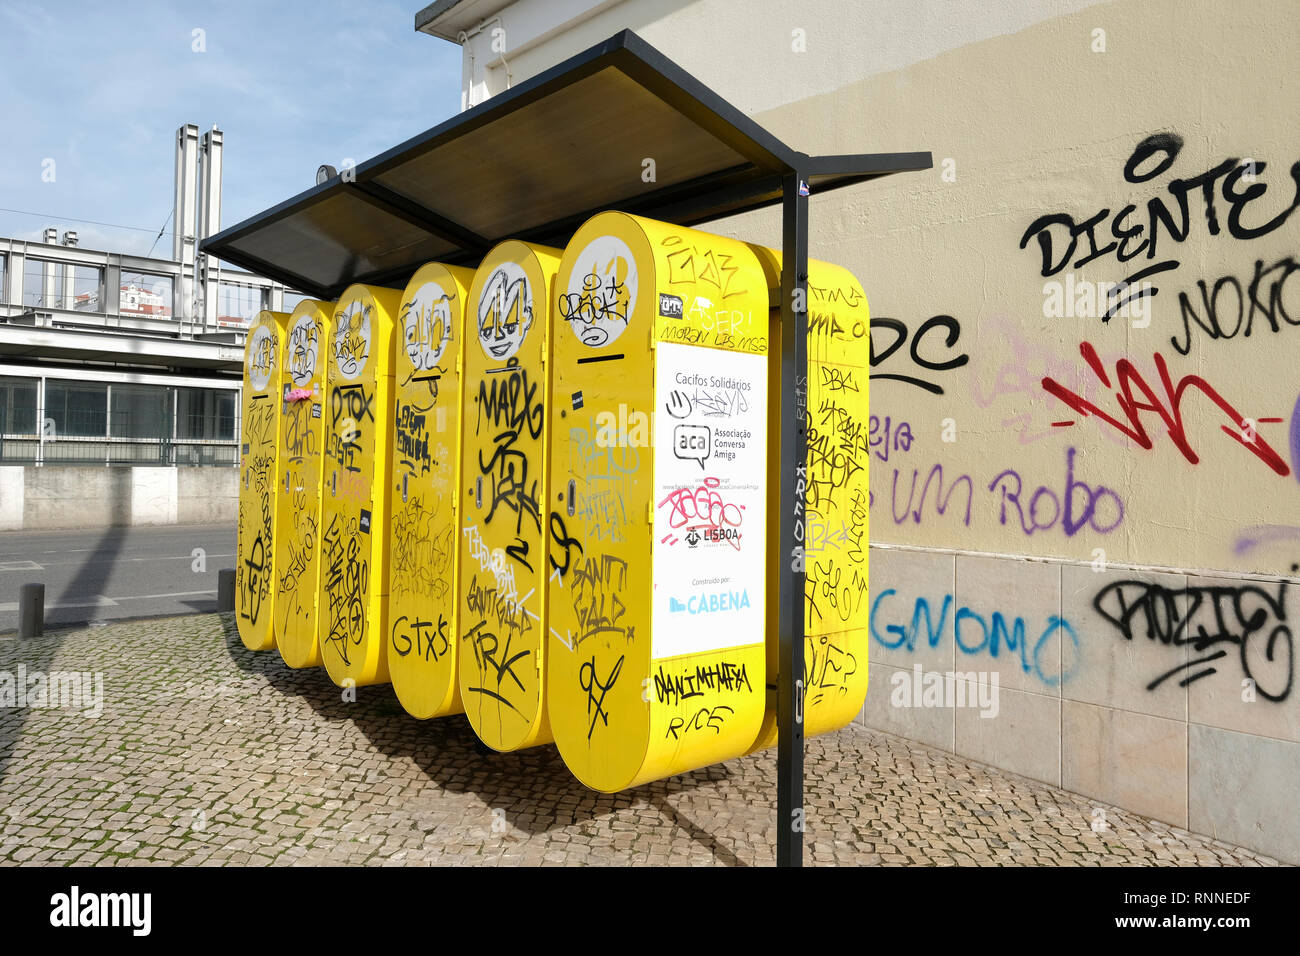 Lisbon city council Cacifos Solidoros, Solidary lockers for homeless people's possessions, Lisbon, Portugal. Stock Photo